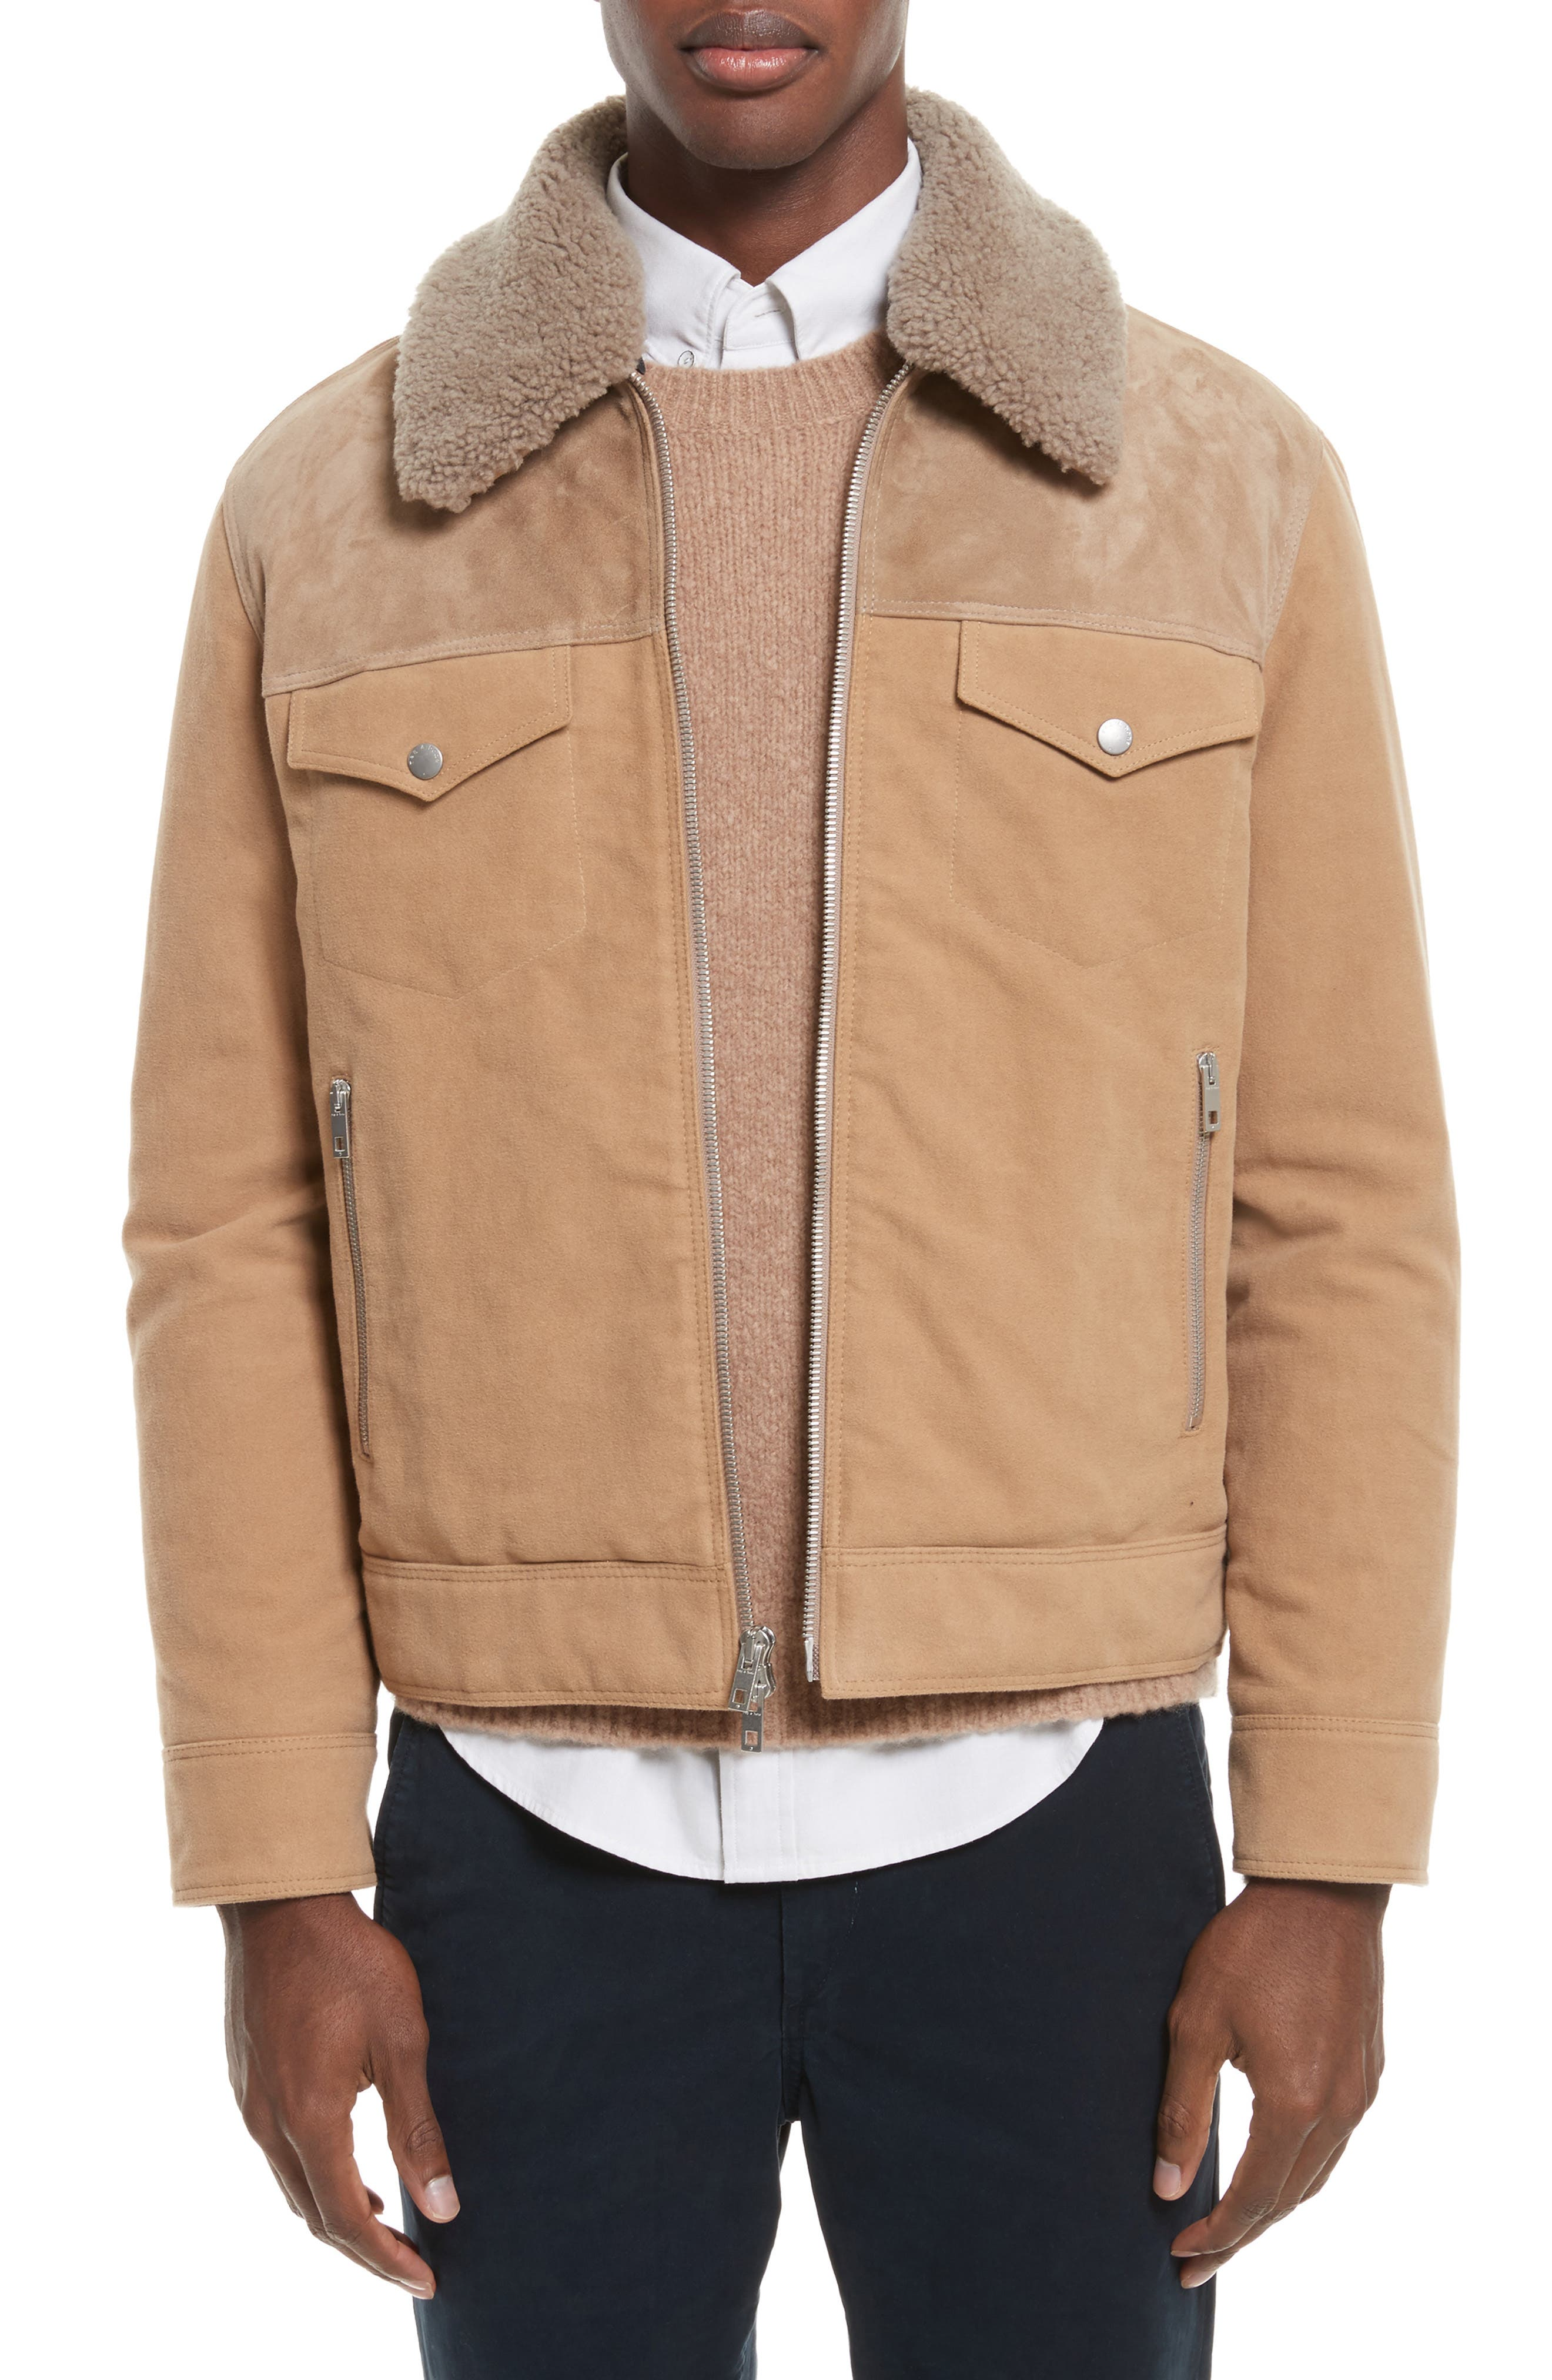 Matthew Work Jacket with Genuine Shearling Collar,                         Main,                         color, Camel